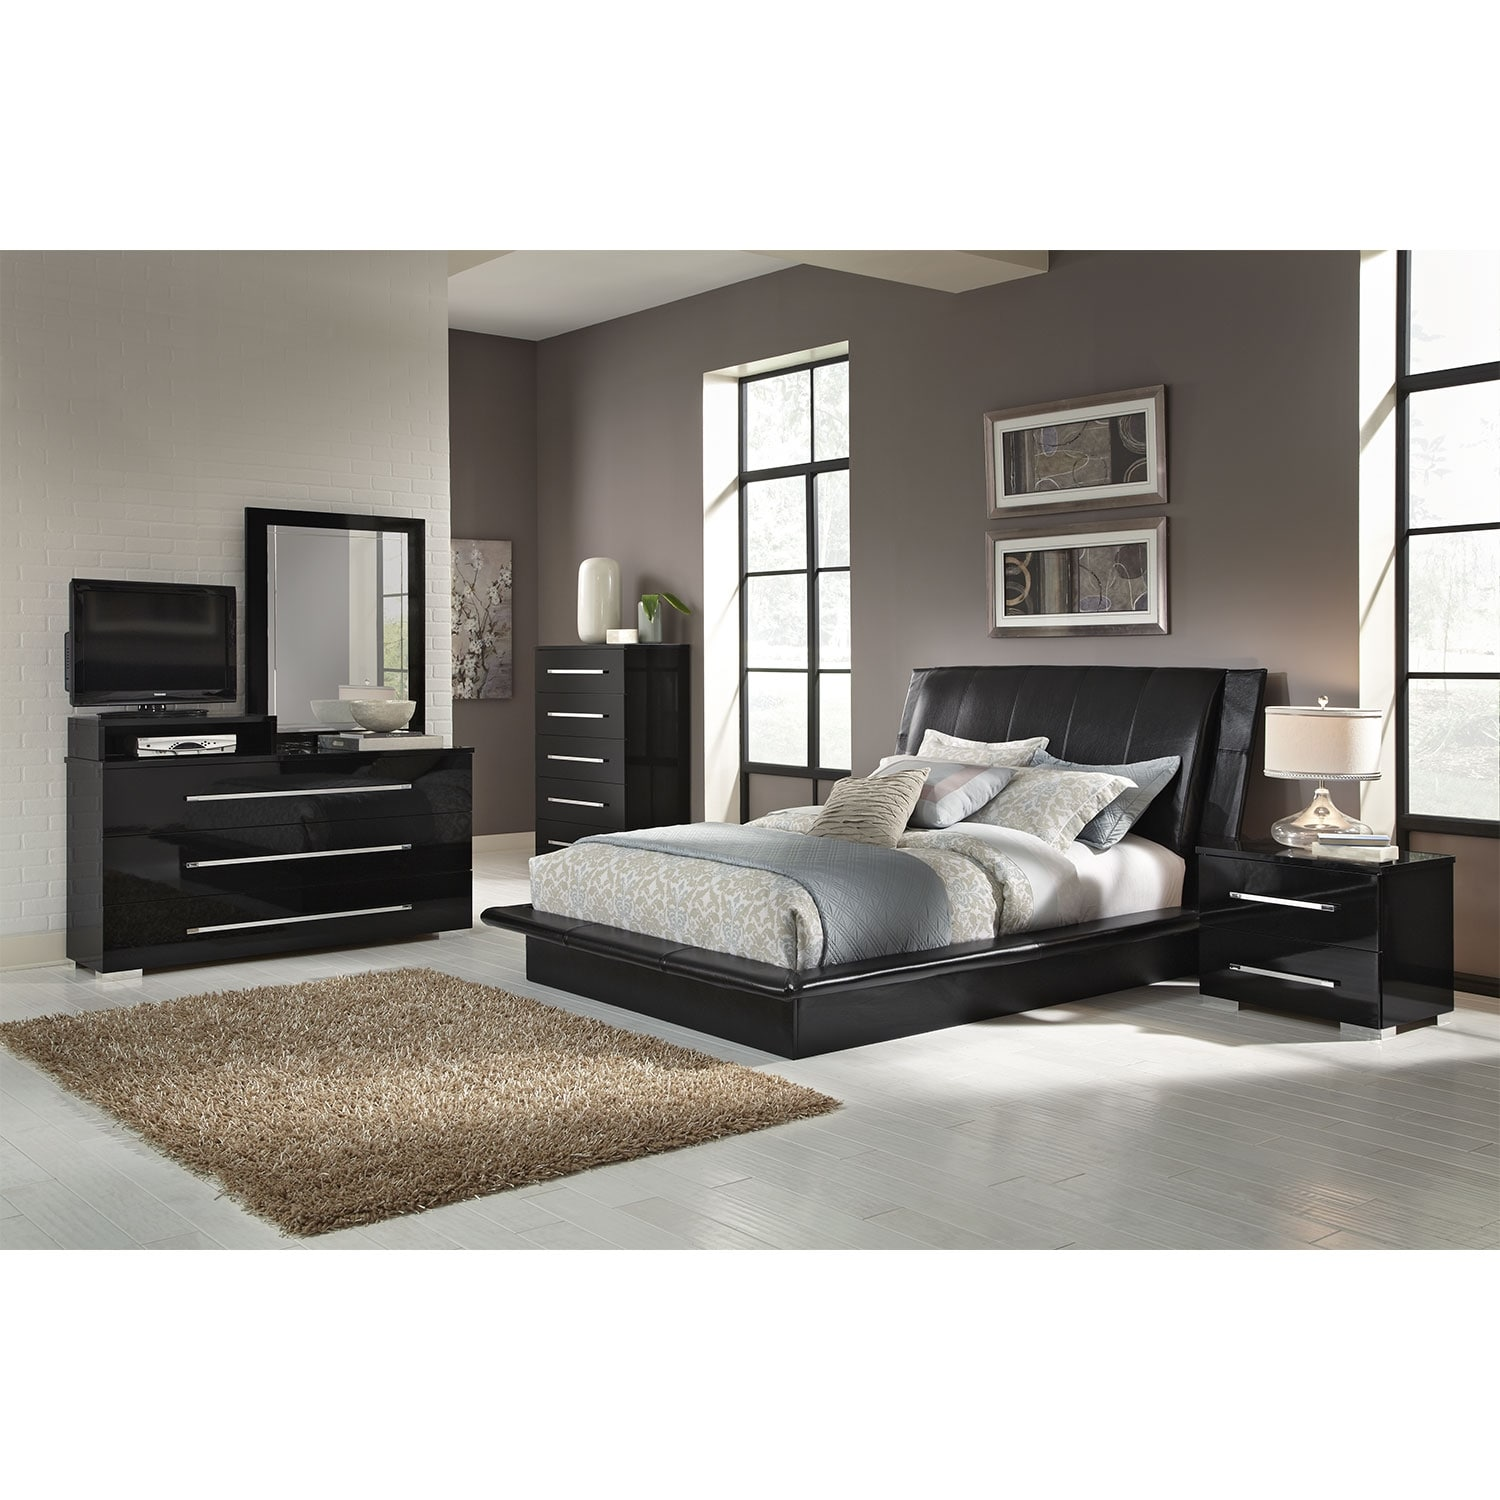 Dimora 7-Piece Queen Upholstered Bedroom Set With Media